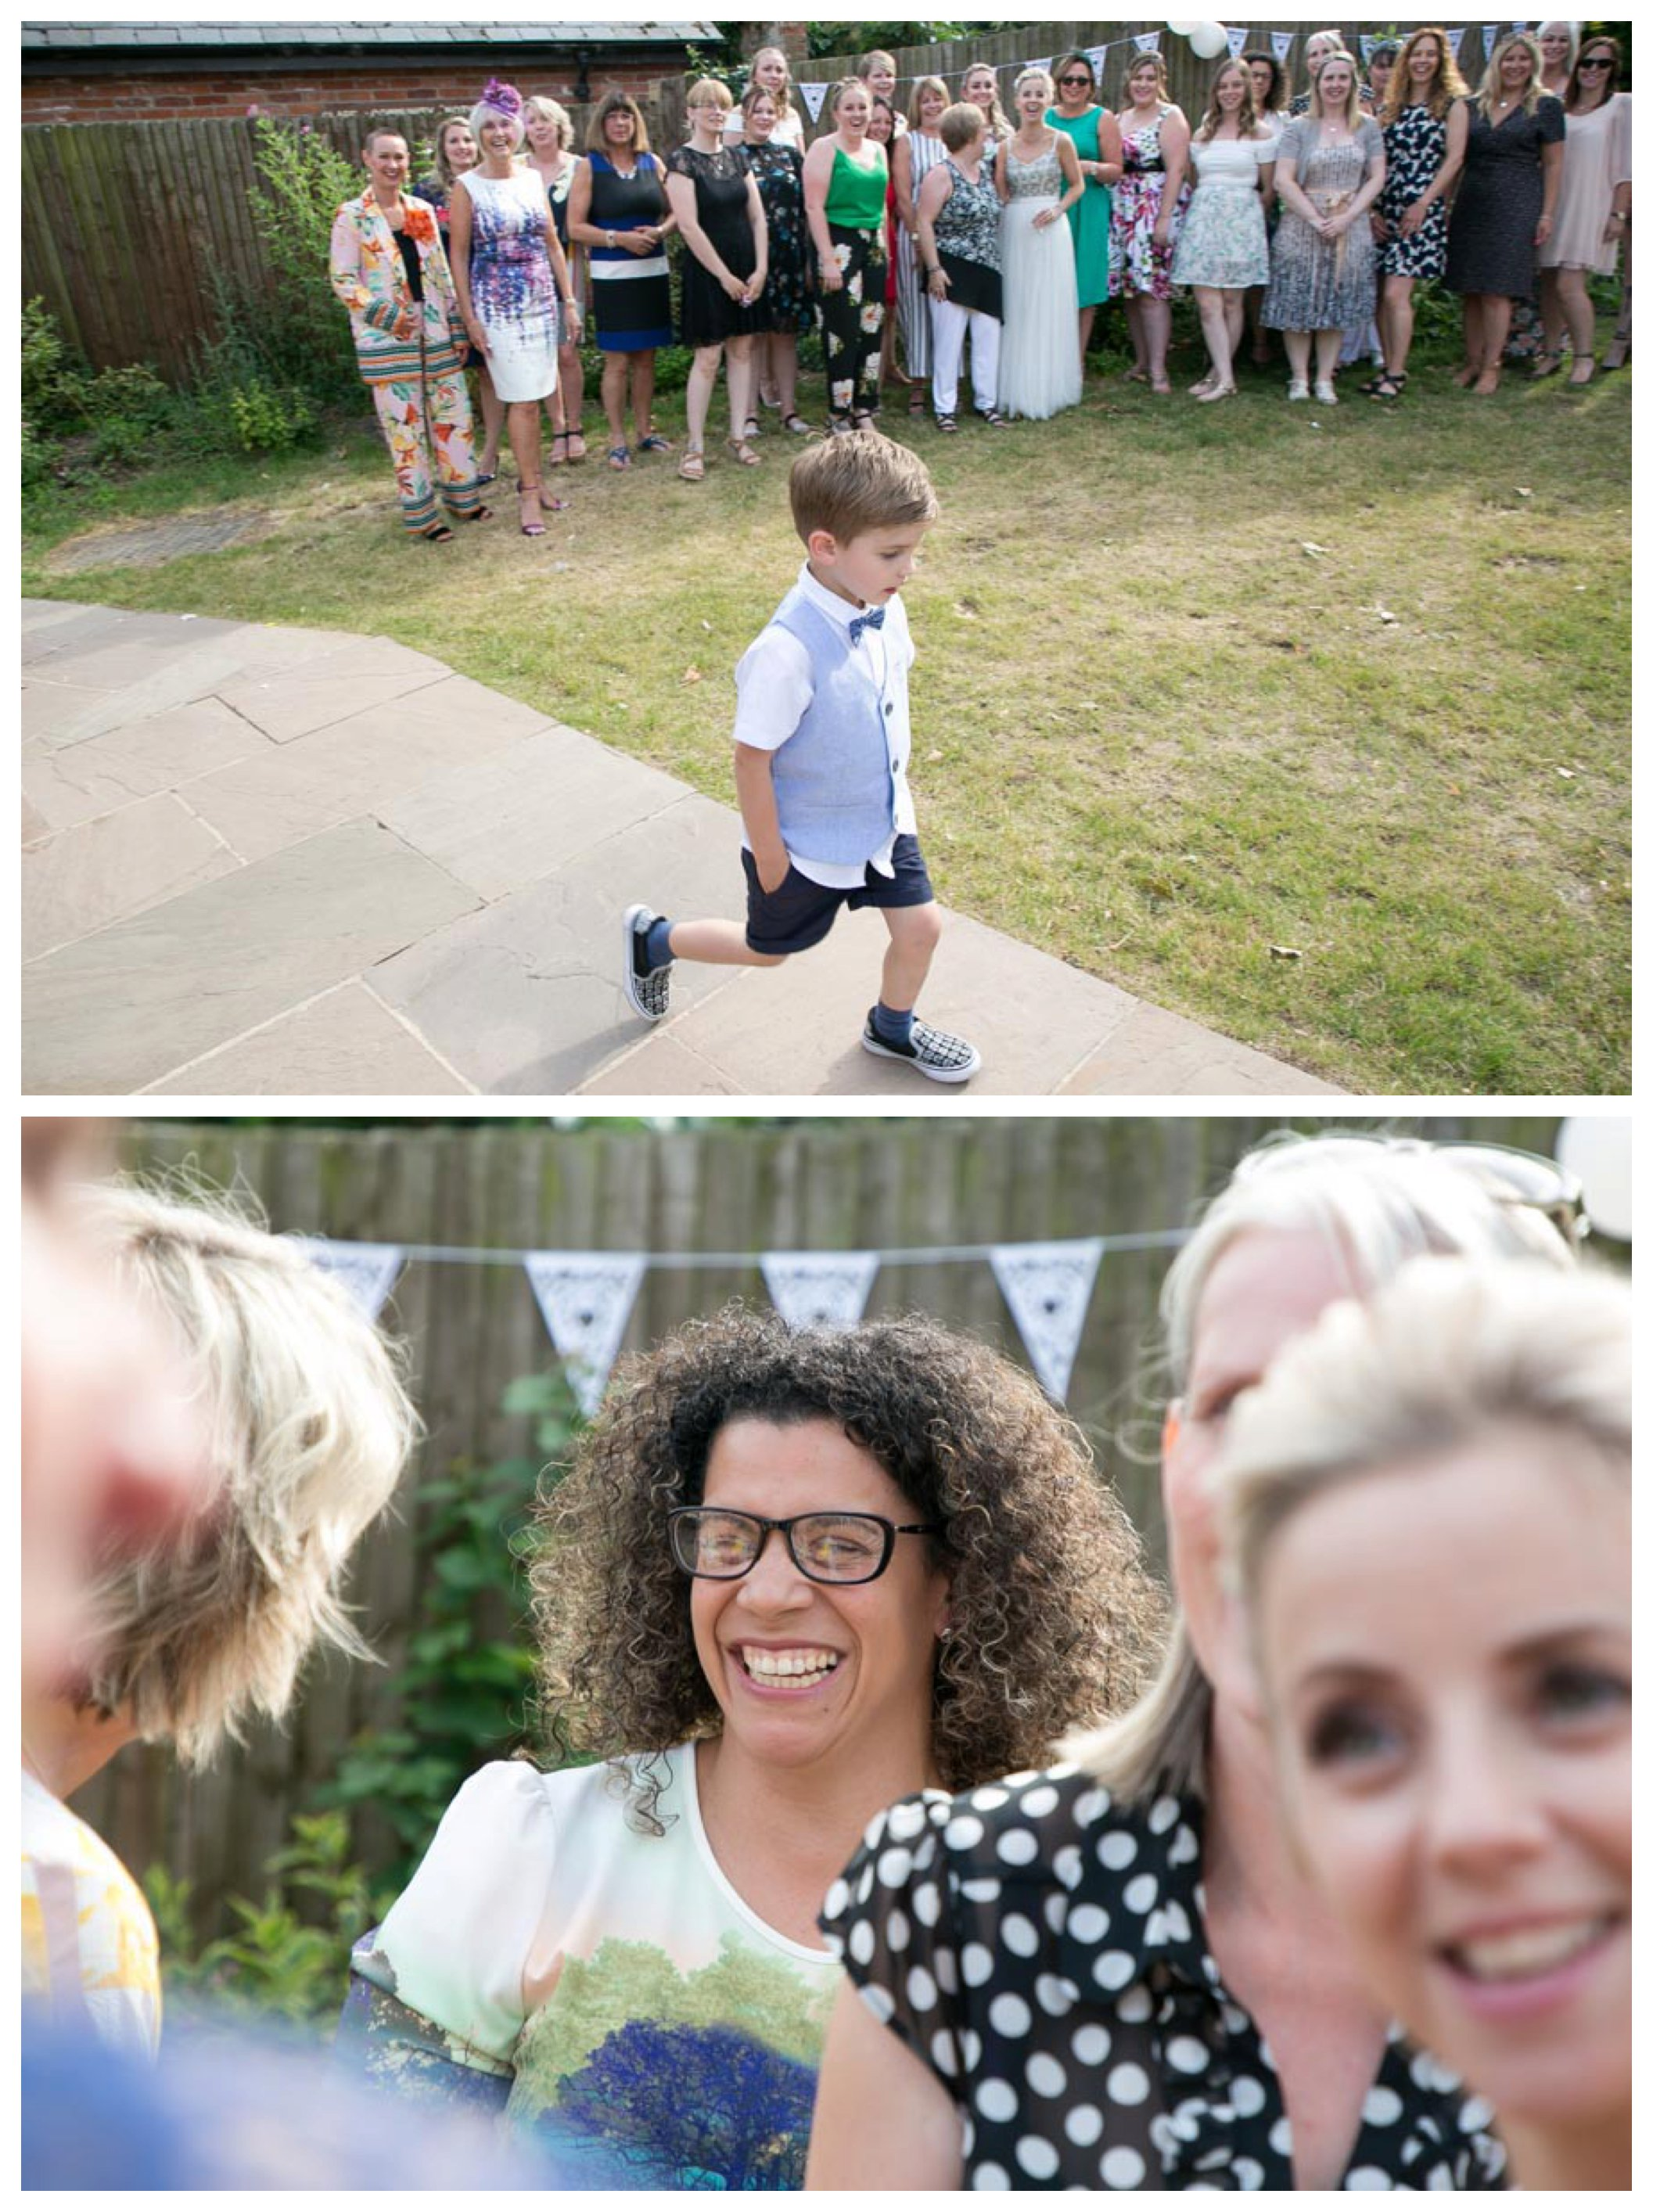 little boy walking past large group ready for photos, smiling wedding guest